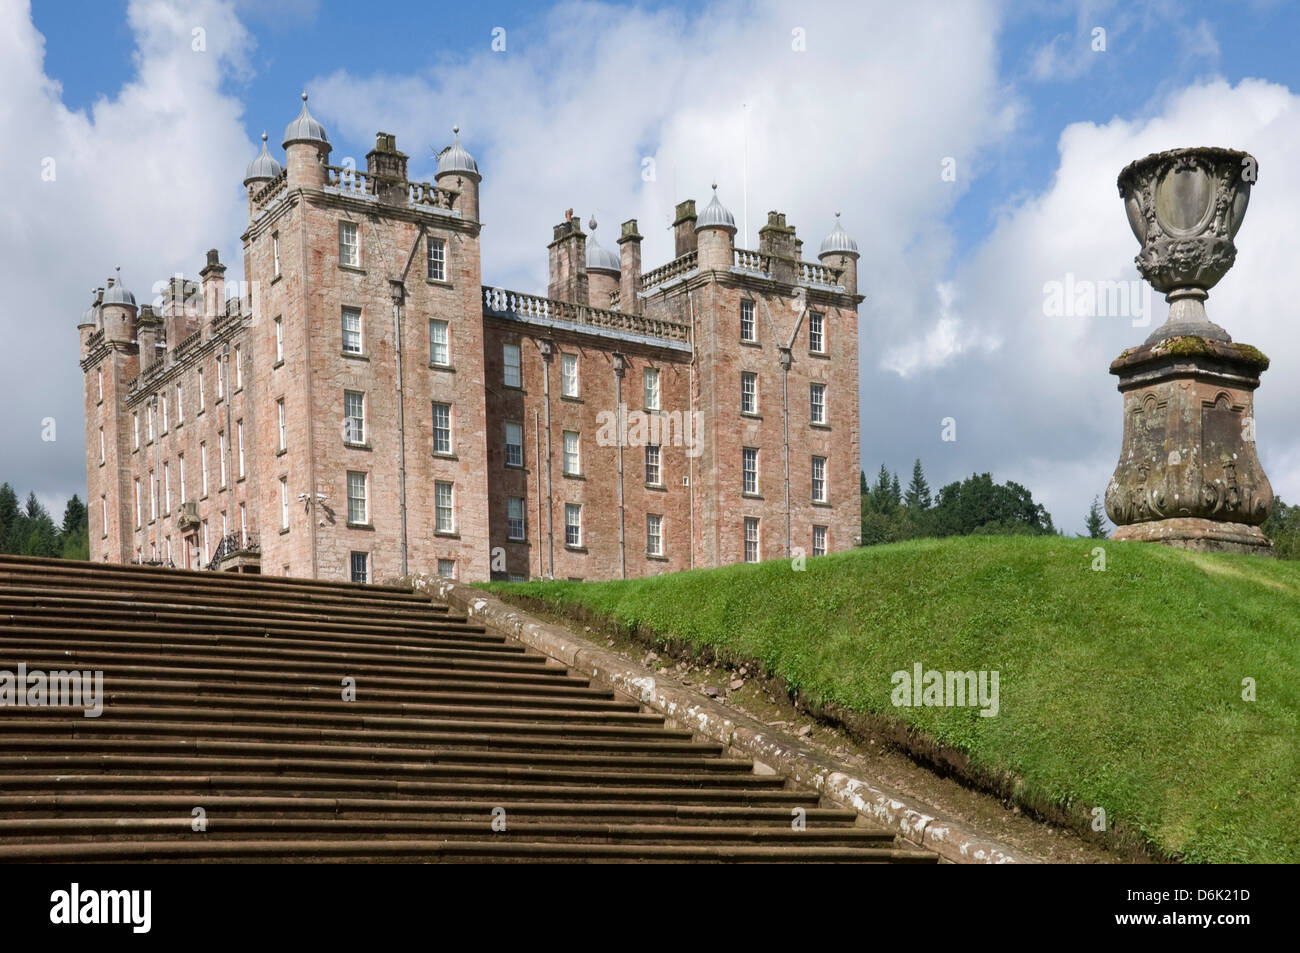 The 17th century Renaissance Palace (The Pink Palace), built by the 1st Duke of Queensberry, Dumfries and Galloway, - Stock Image